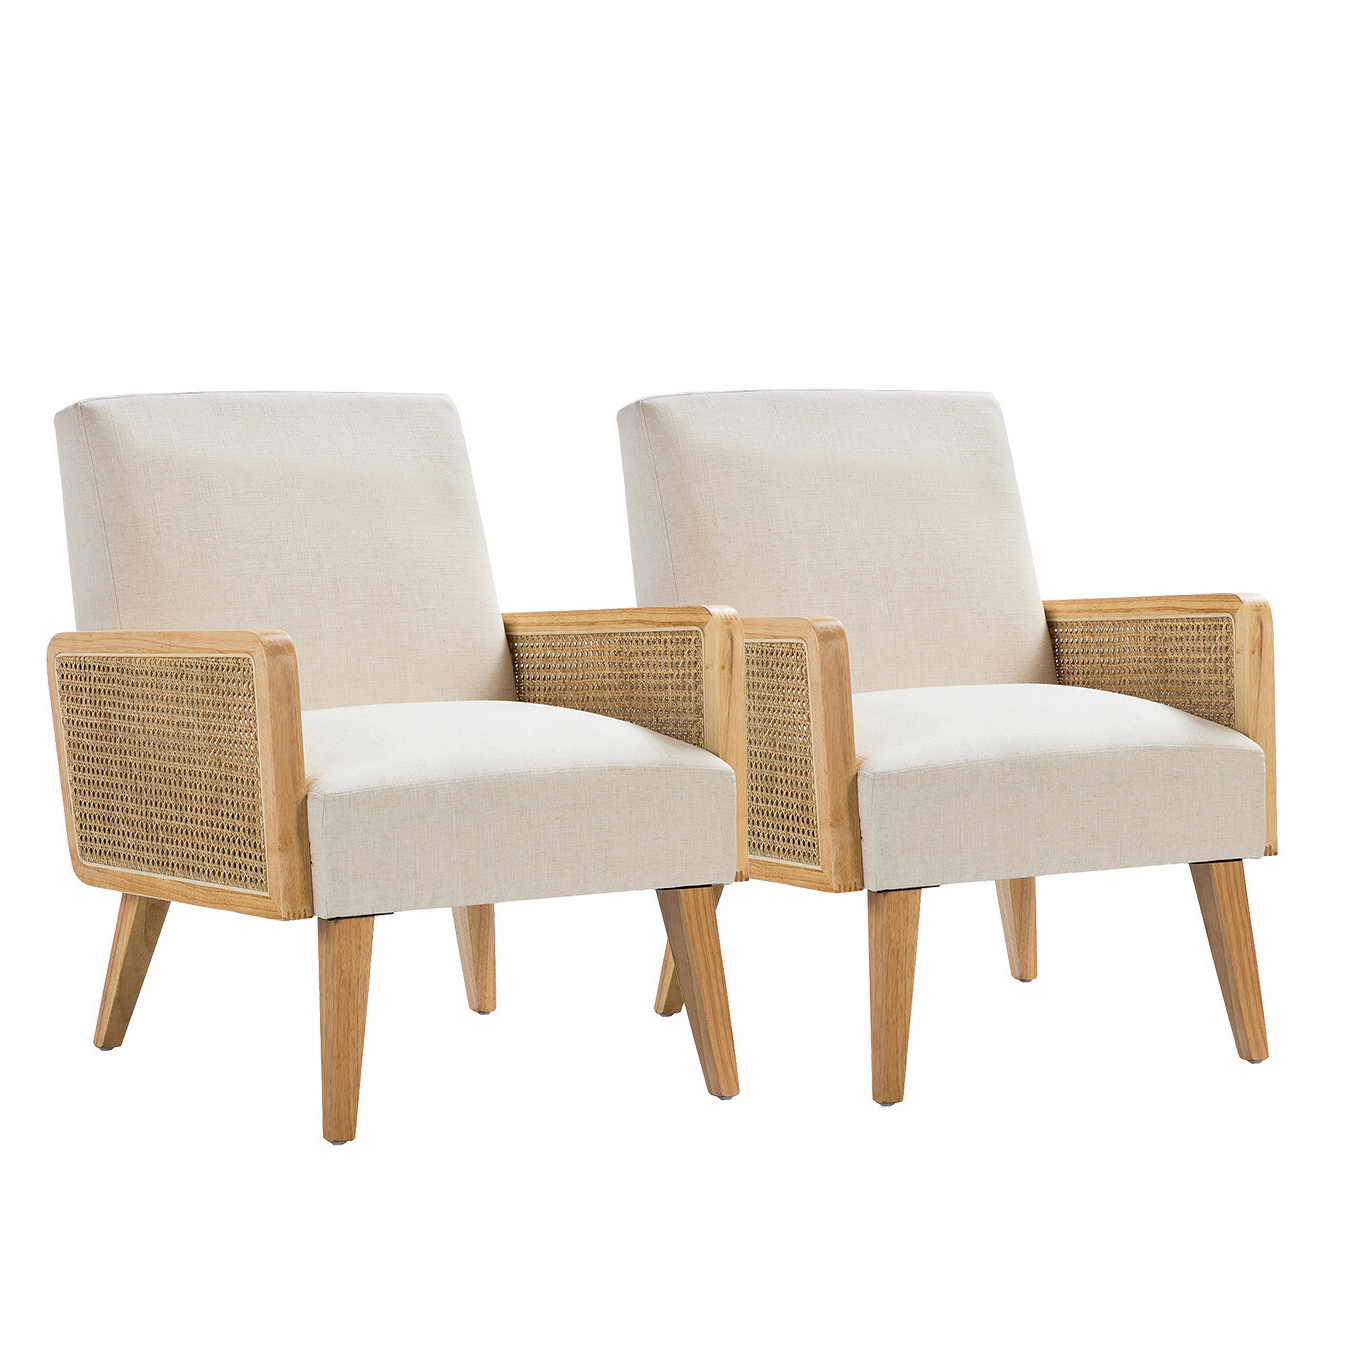 Arm Modern & Contemporary Accent Chairs You'll Love In 2021 For Widely Used Dallin Arm Chairs (View 5 of 20)